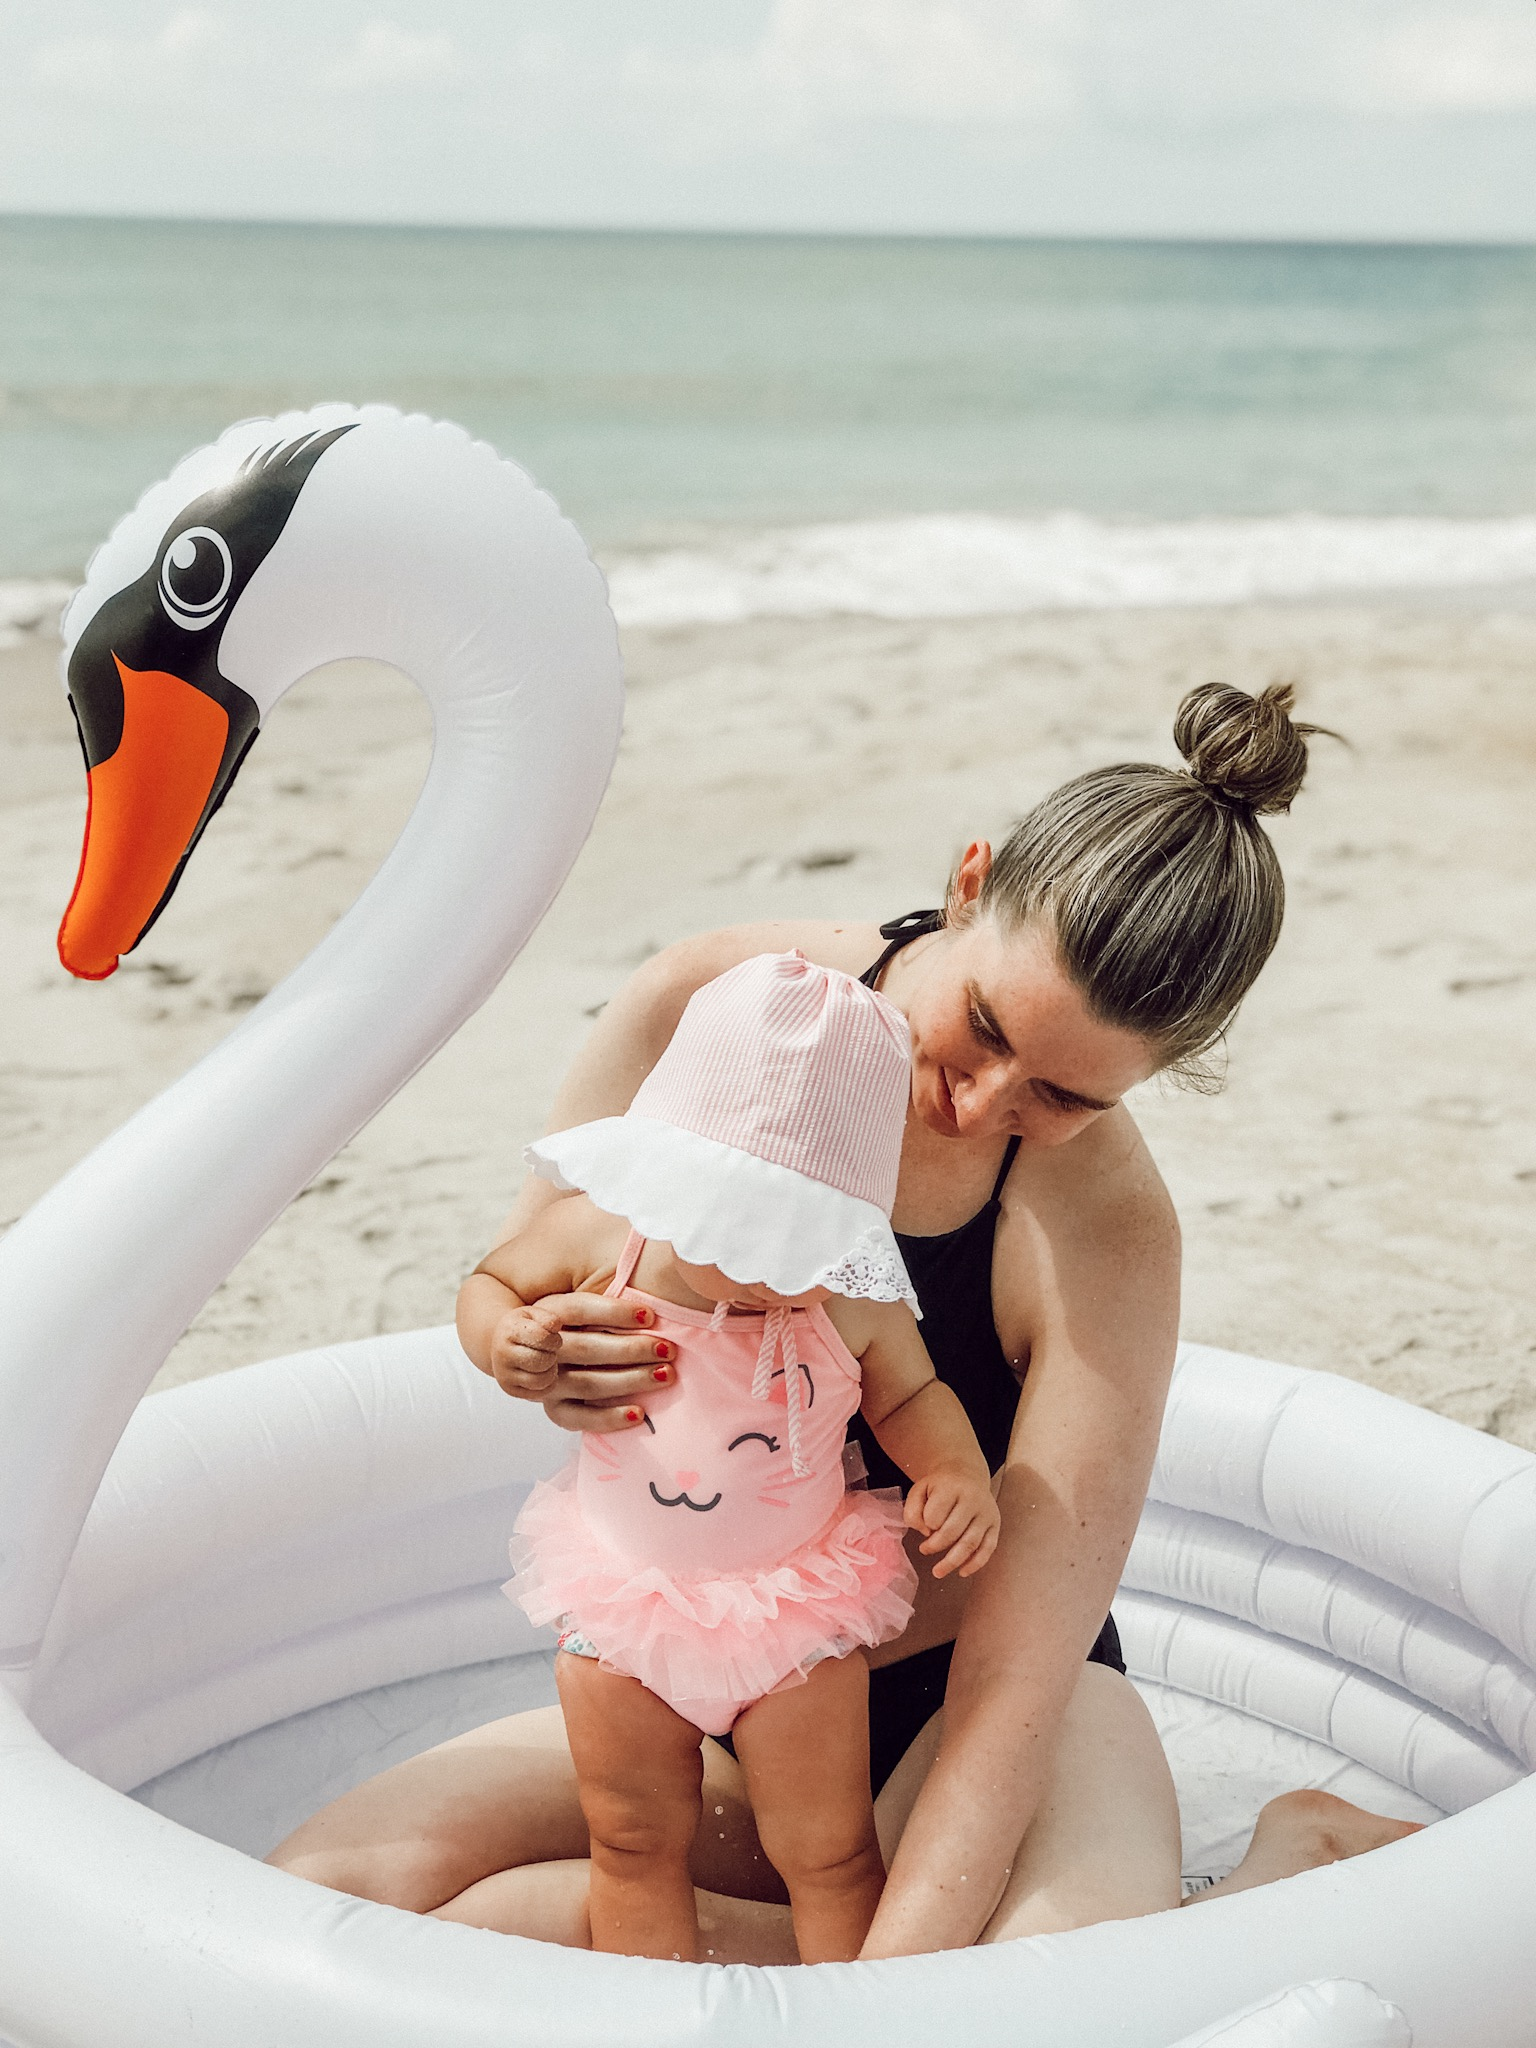 Beach with Baby Beach Gear Toddler What to Bring To Beach with Baby